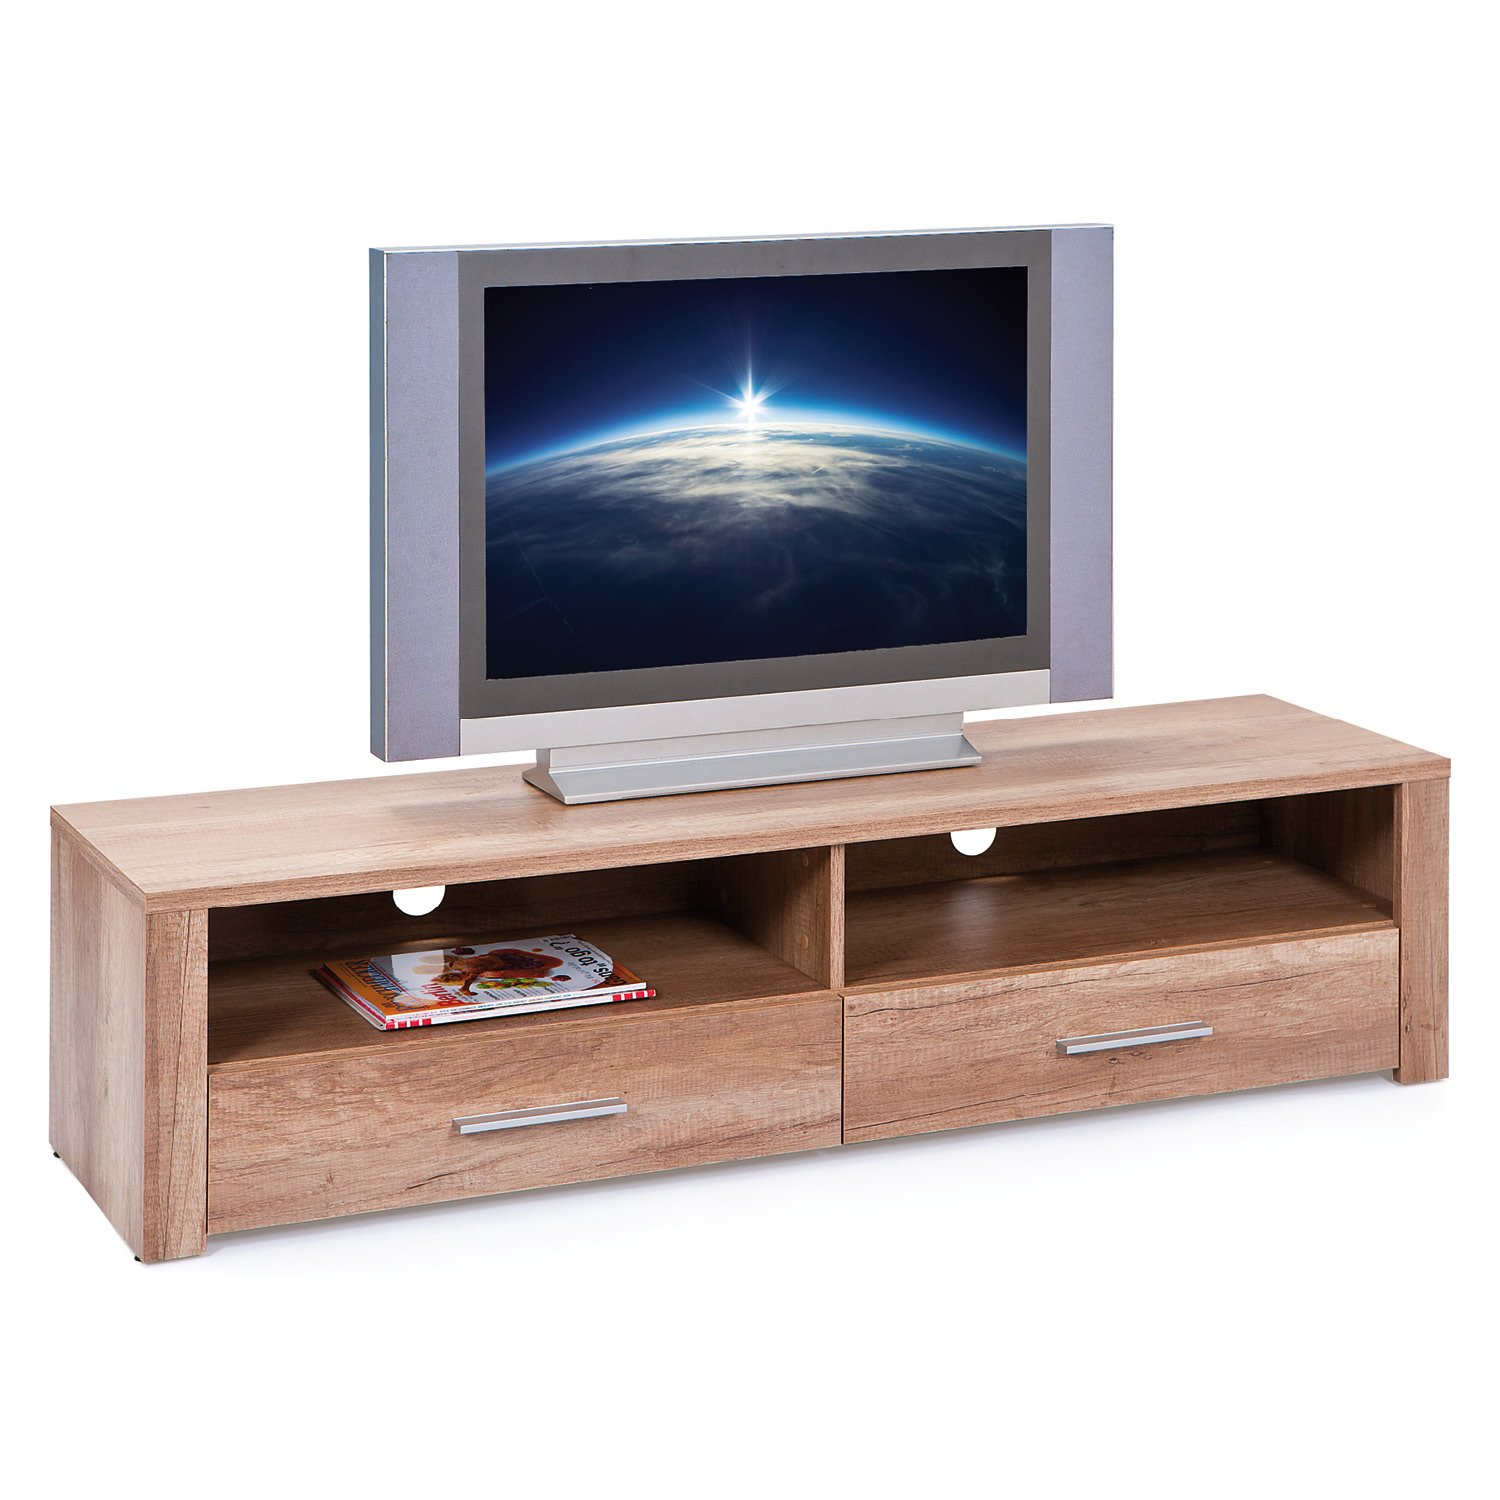 Inter Link 22500800 TV Regal TV TV TV Board Hifi Tisch Schrank Media Rack Wildeiche Beige hochglanz modern daeb88